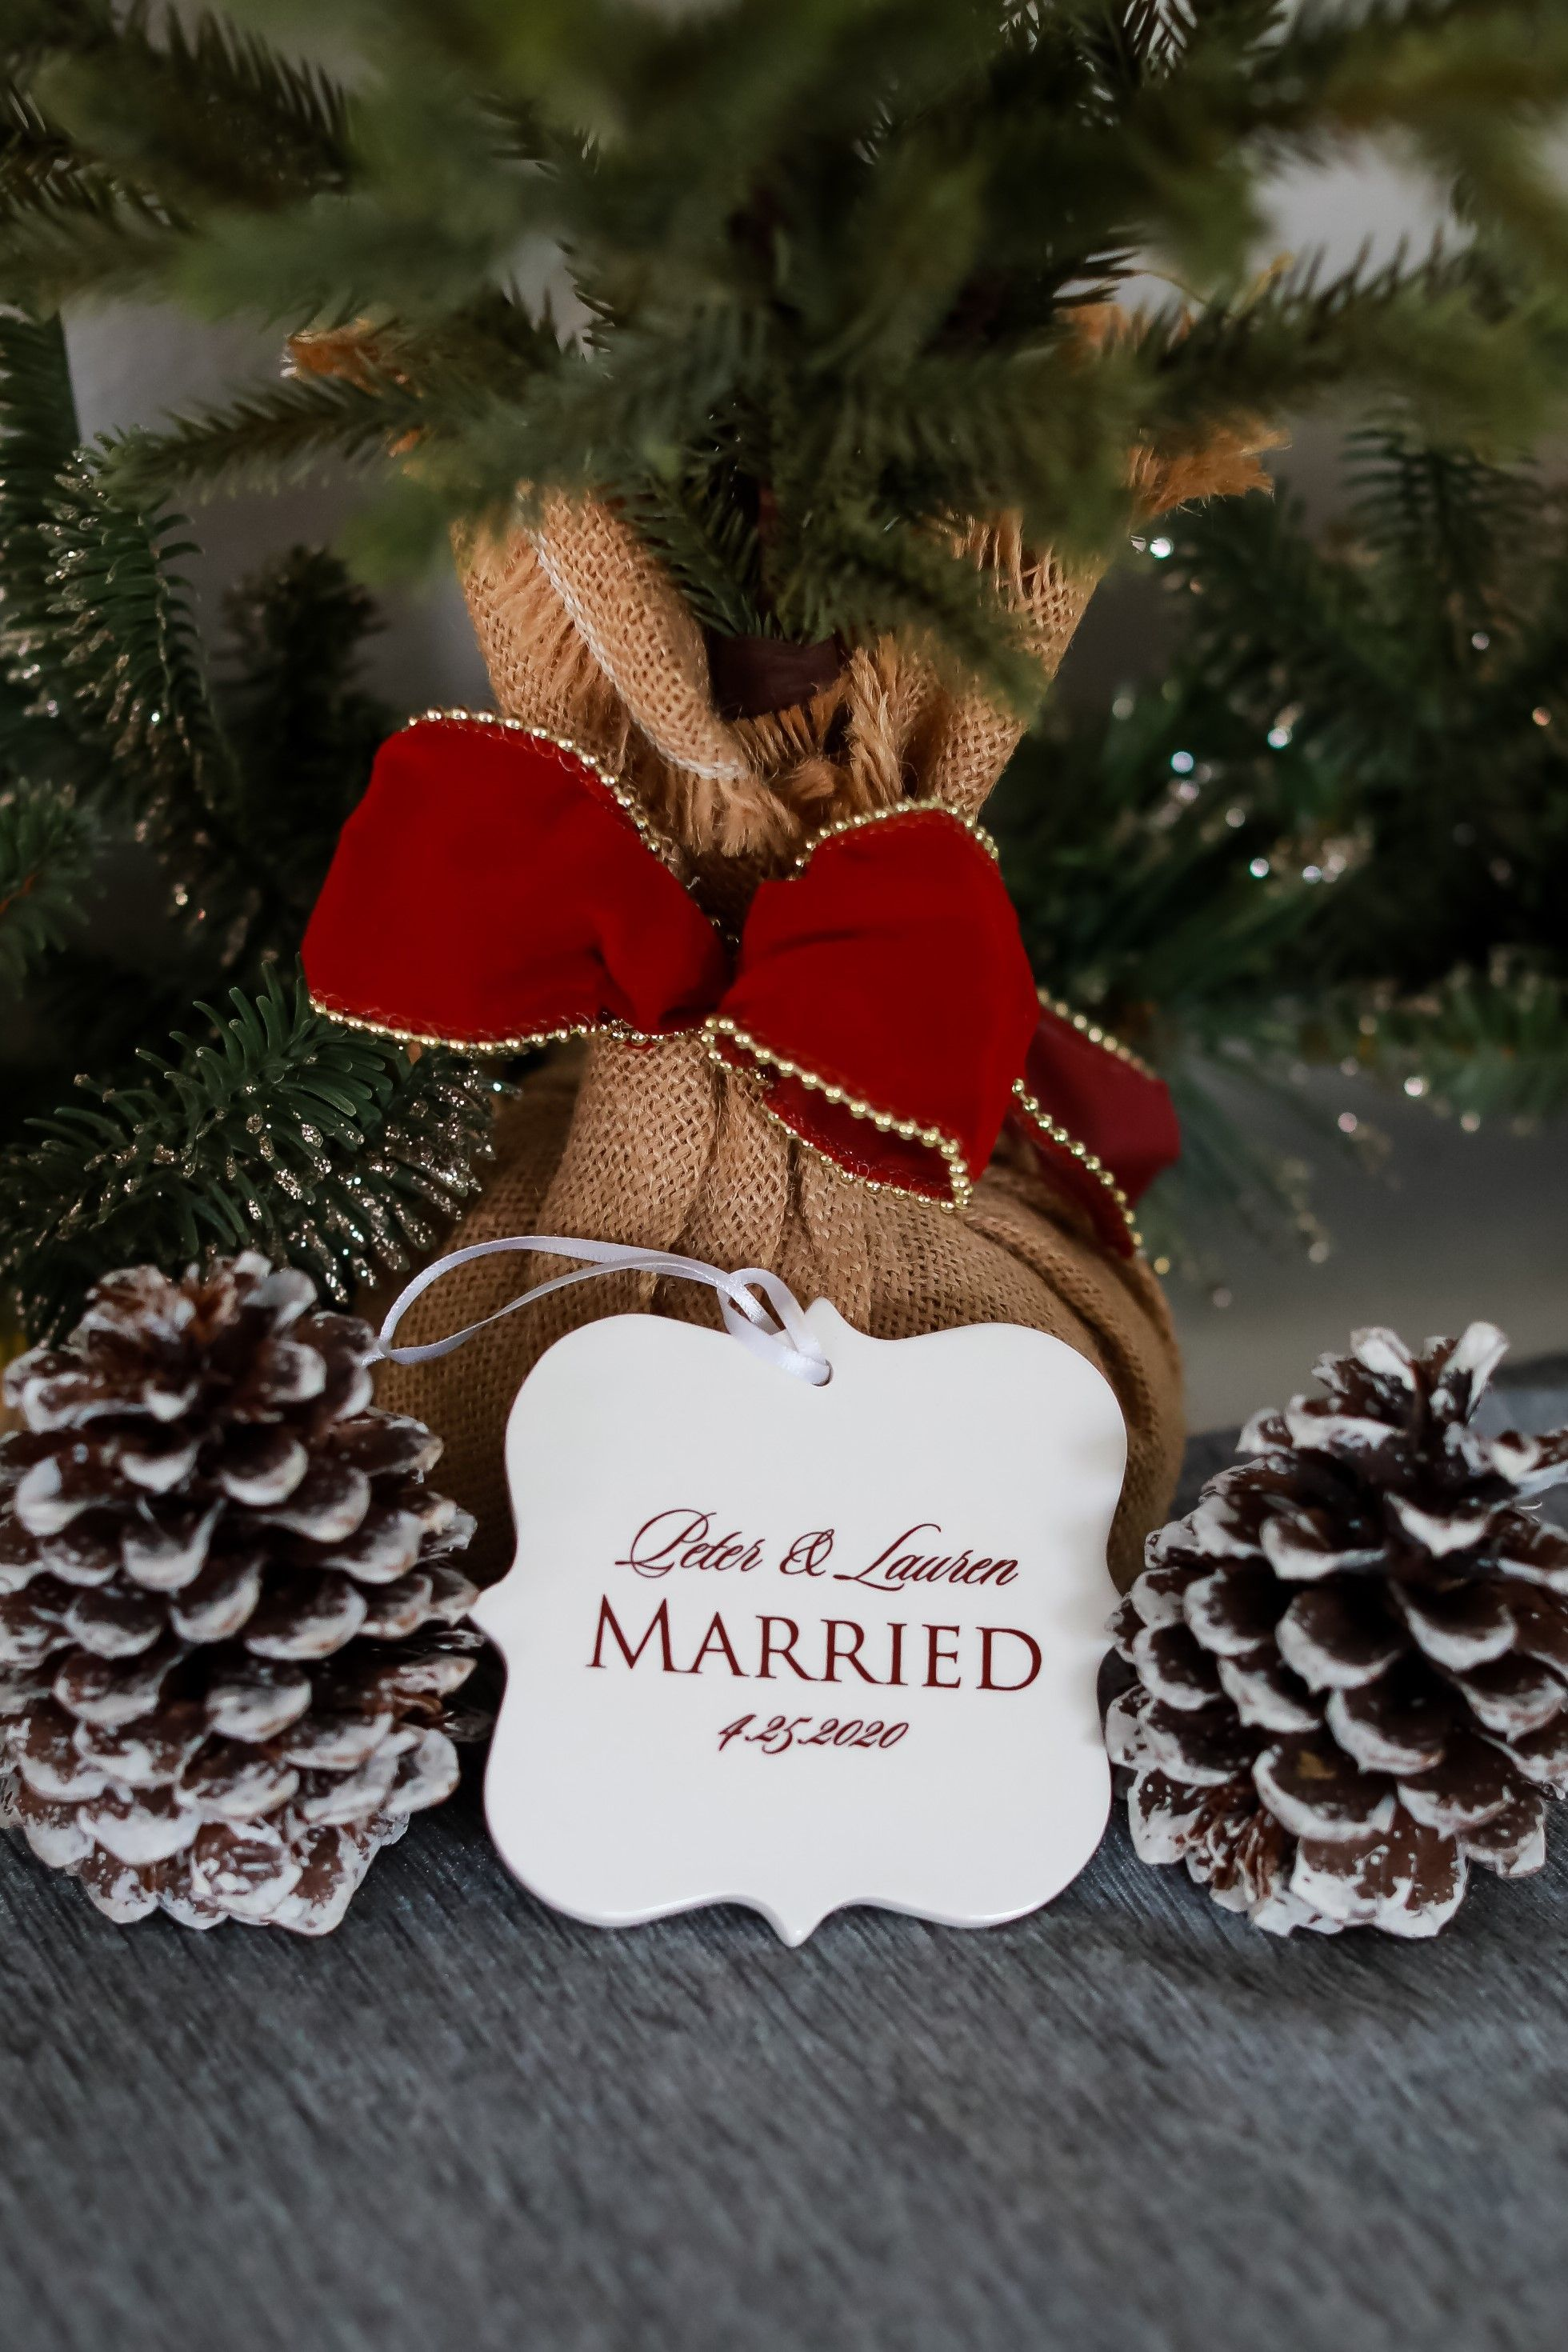 Just married ornament our first christmas wedding